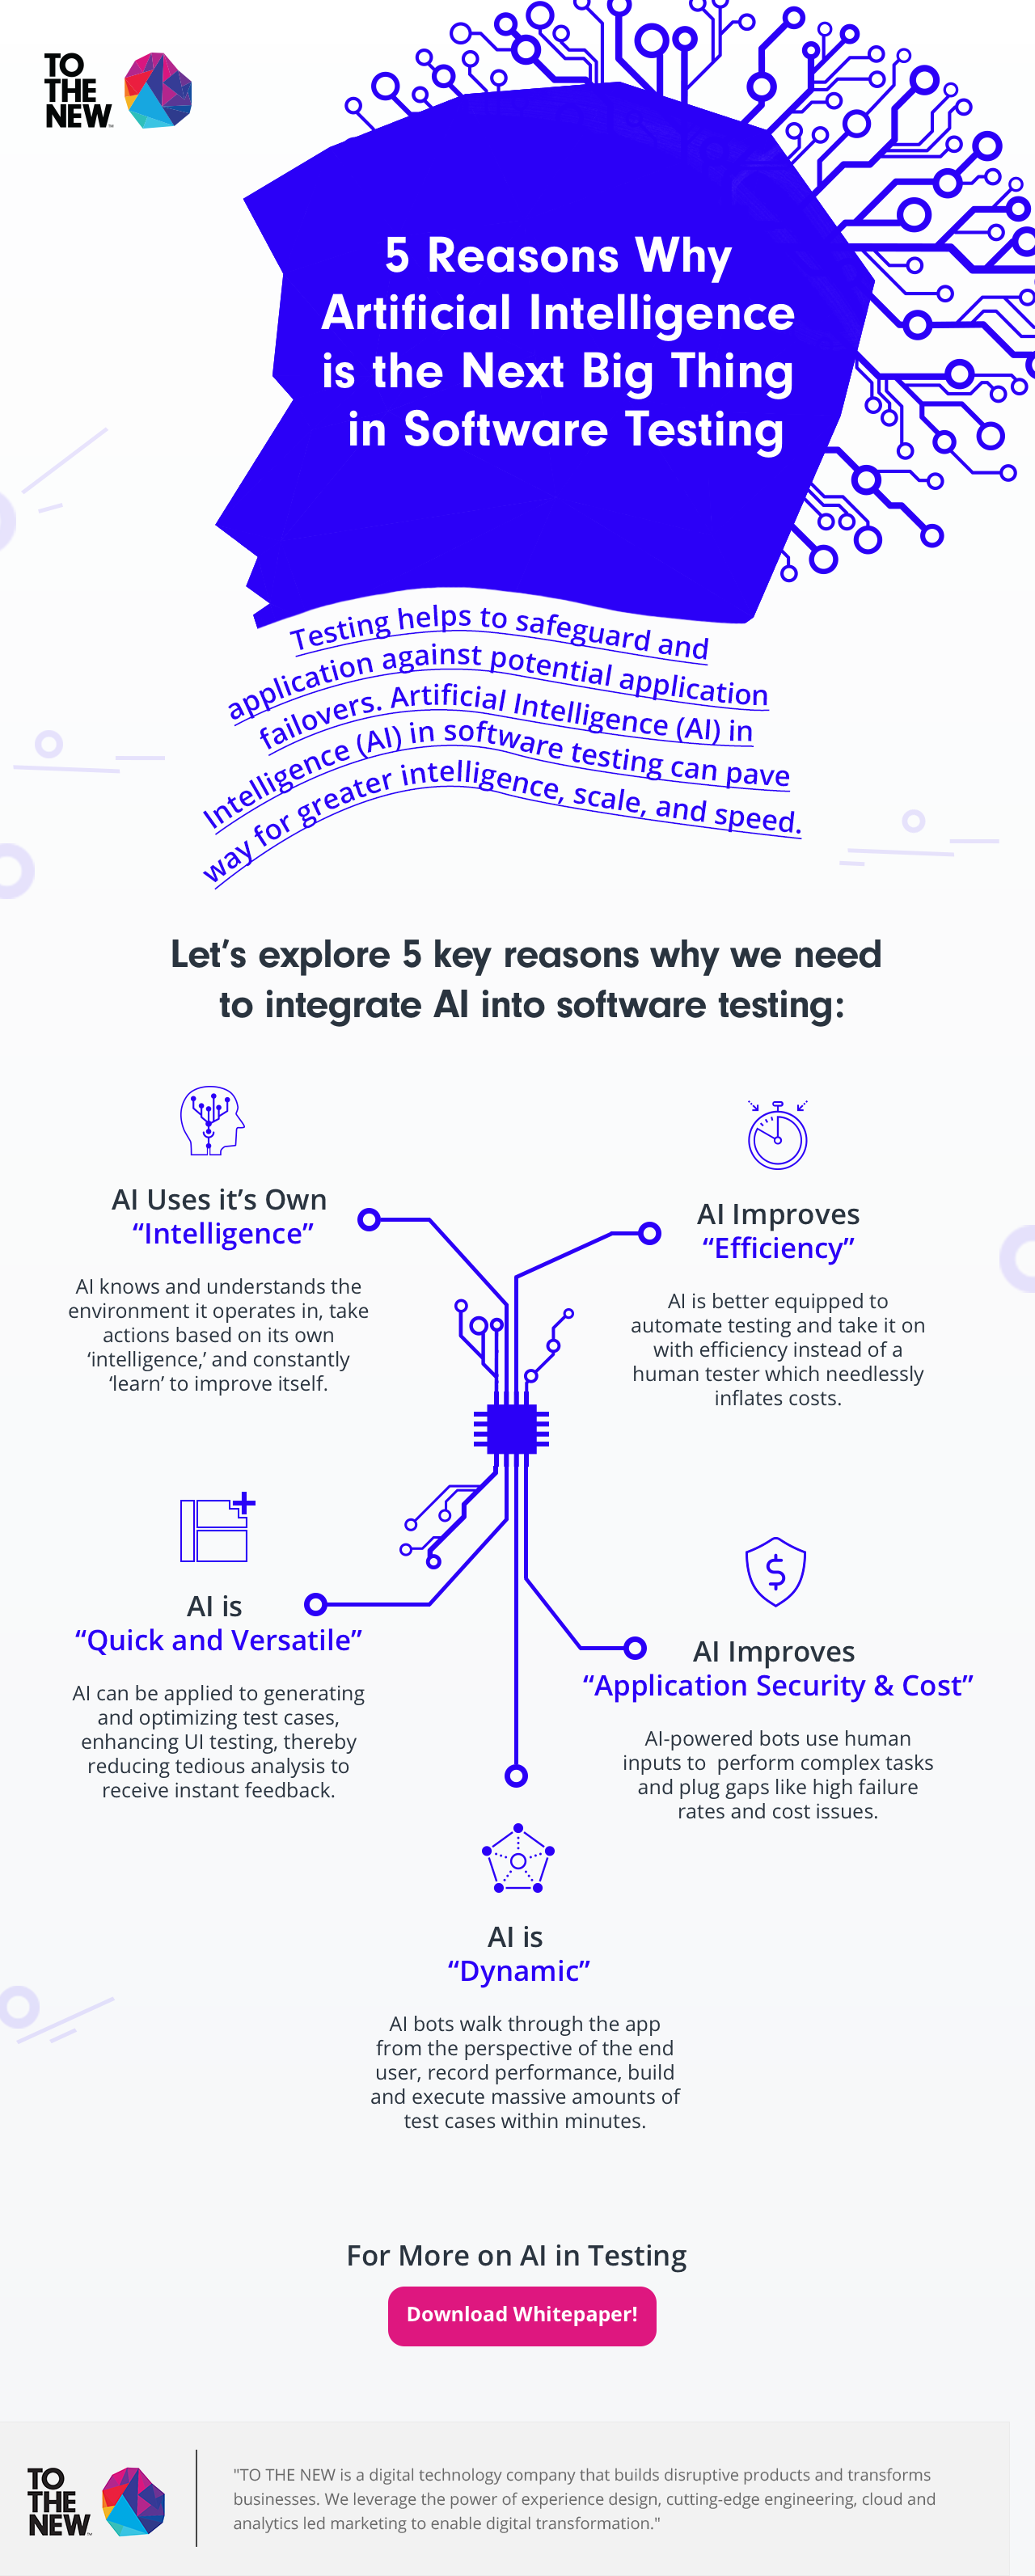 5-reasons-why-artificial-intelligence-is-the-next-big-thing-in-software-testing